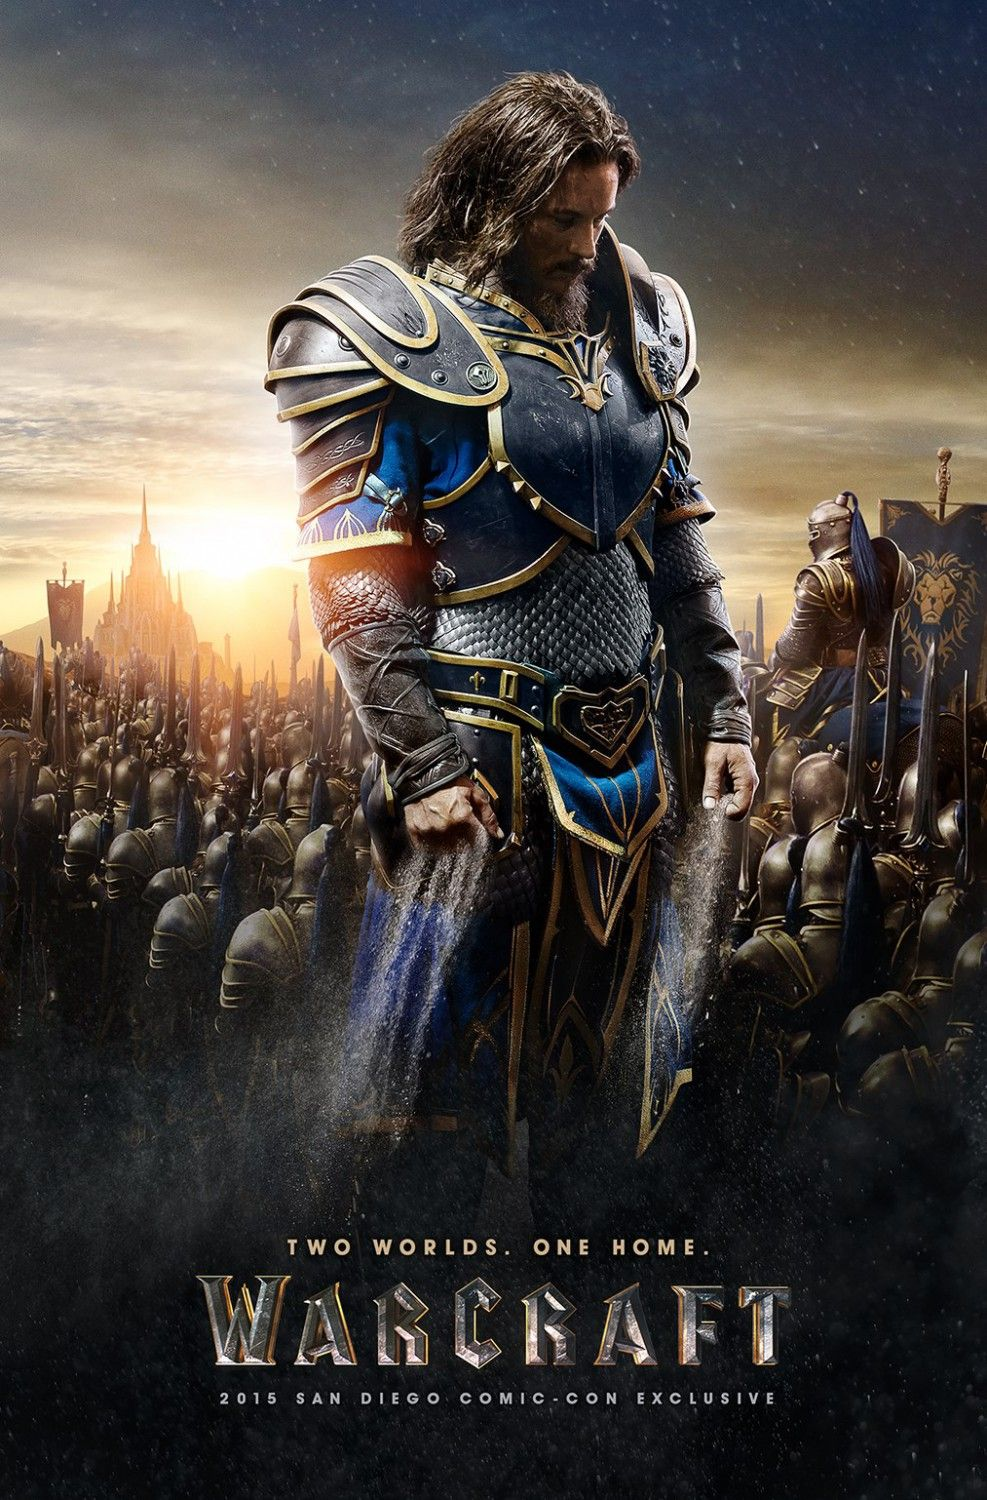 Warcraft Extra Large Movie Poster Image Internet Movie Poster Awards Gallery Filme Warcraft World Of Warcraft Lixeira Carro